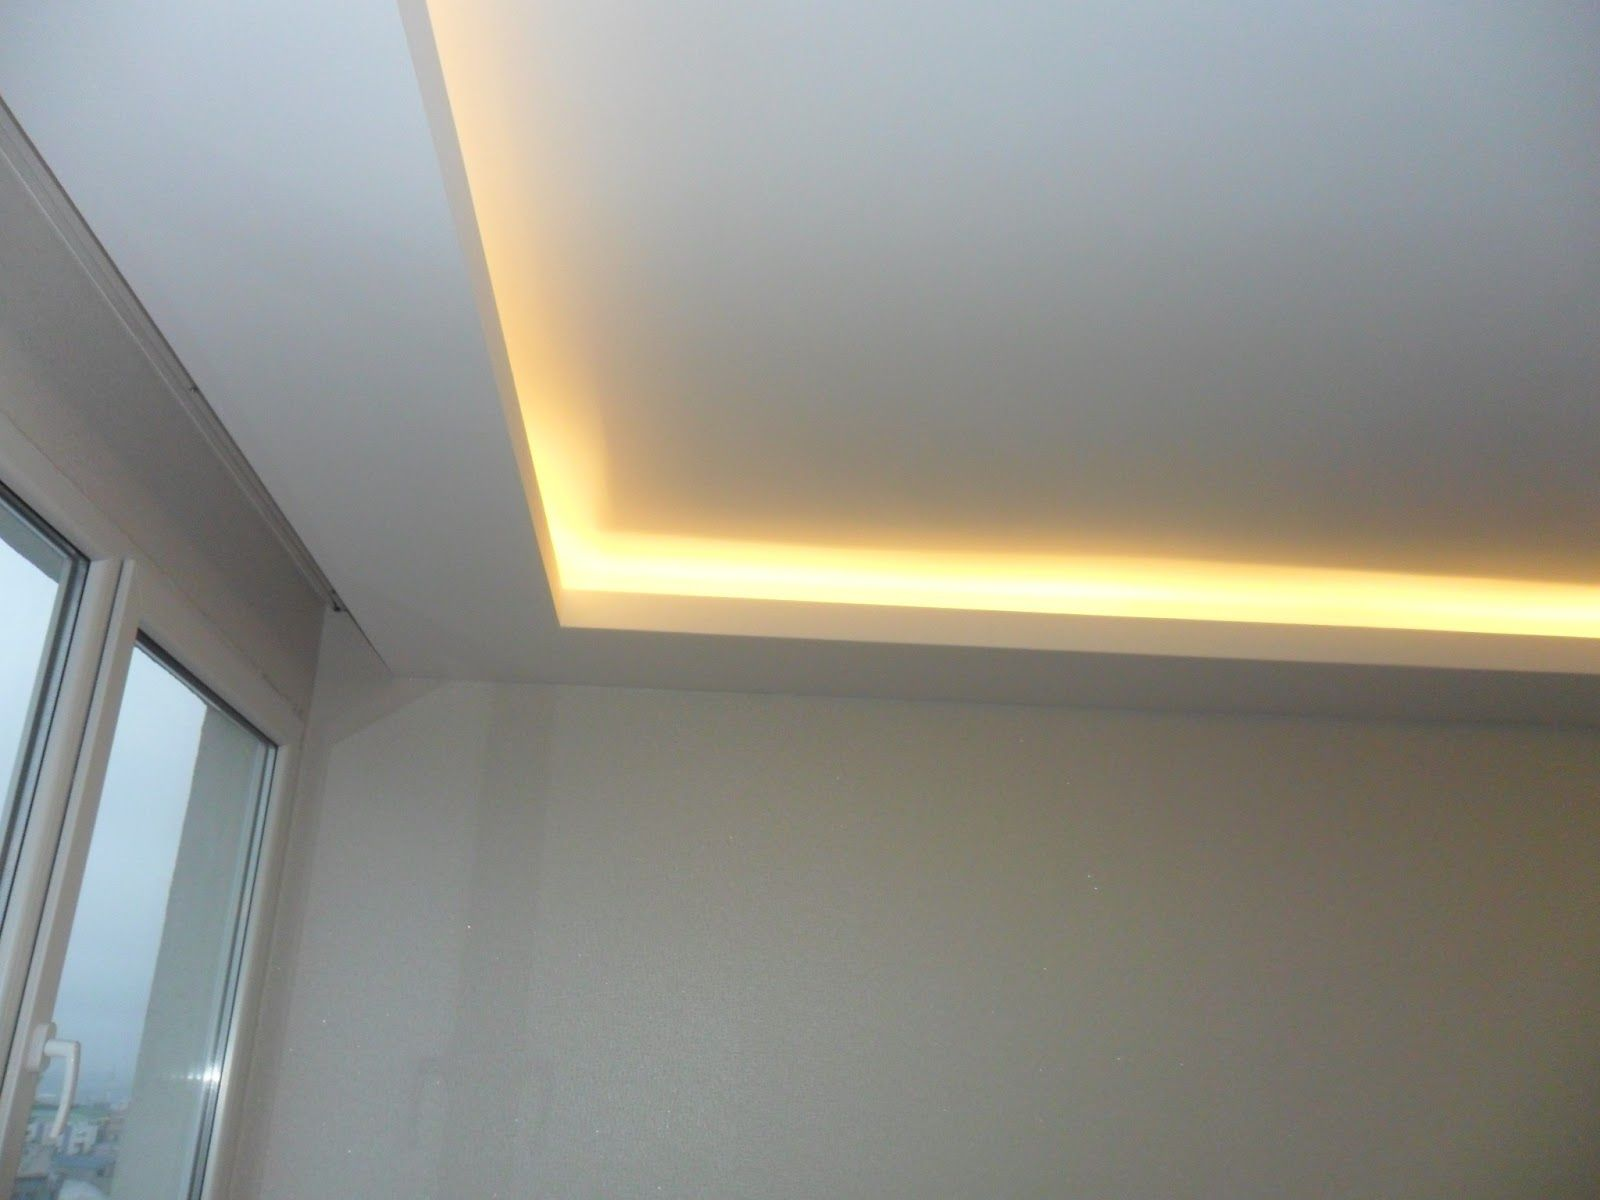 gizli led | aydınlatma | Pinterest | Ceiling, Living rooms and Room